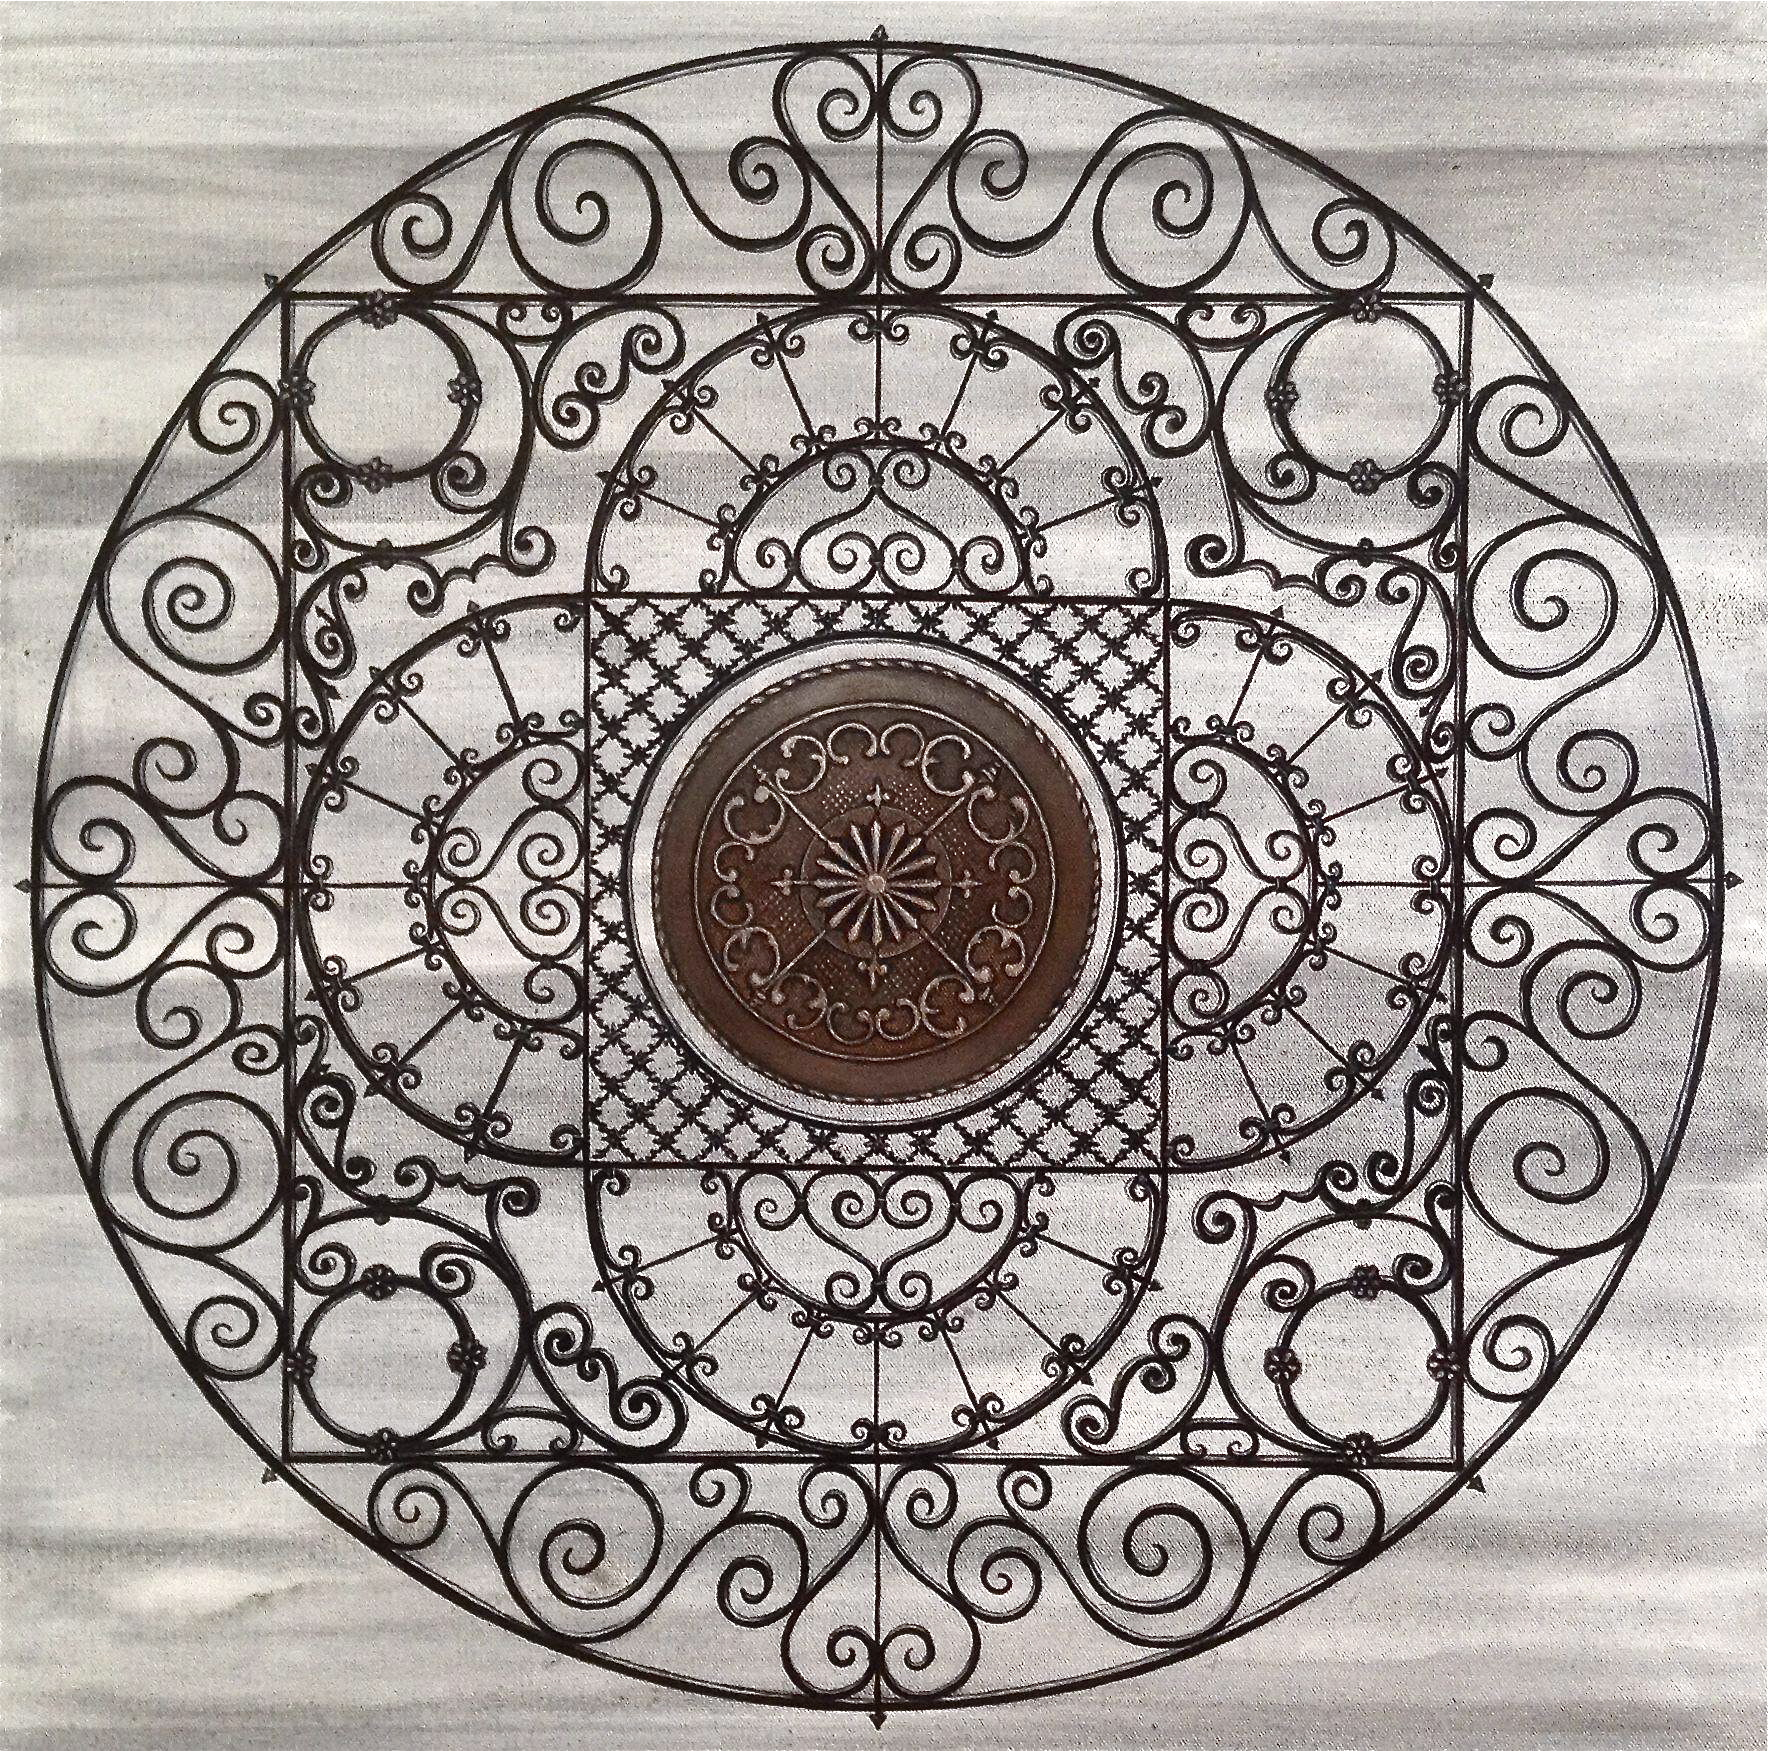 Iron Mandala, acrylic on canvas, by David DeWitt